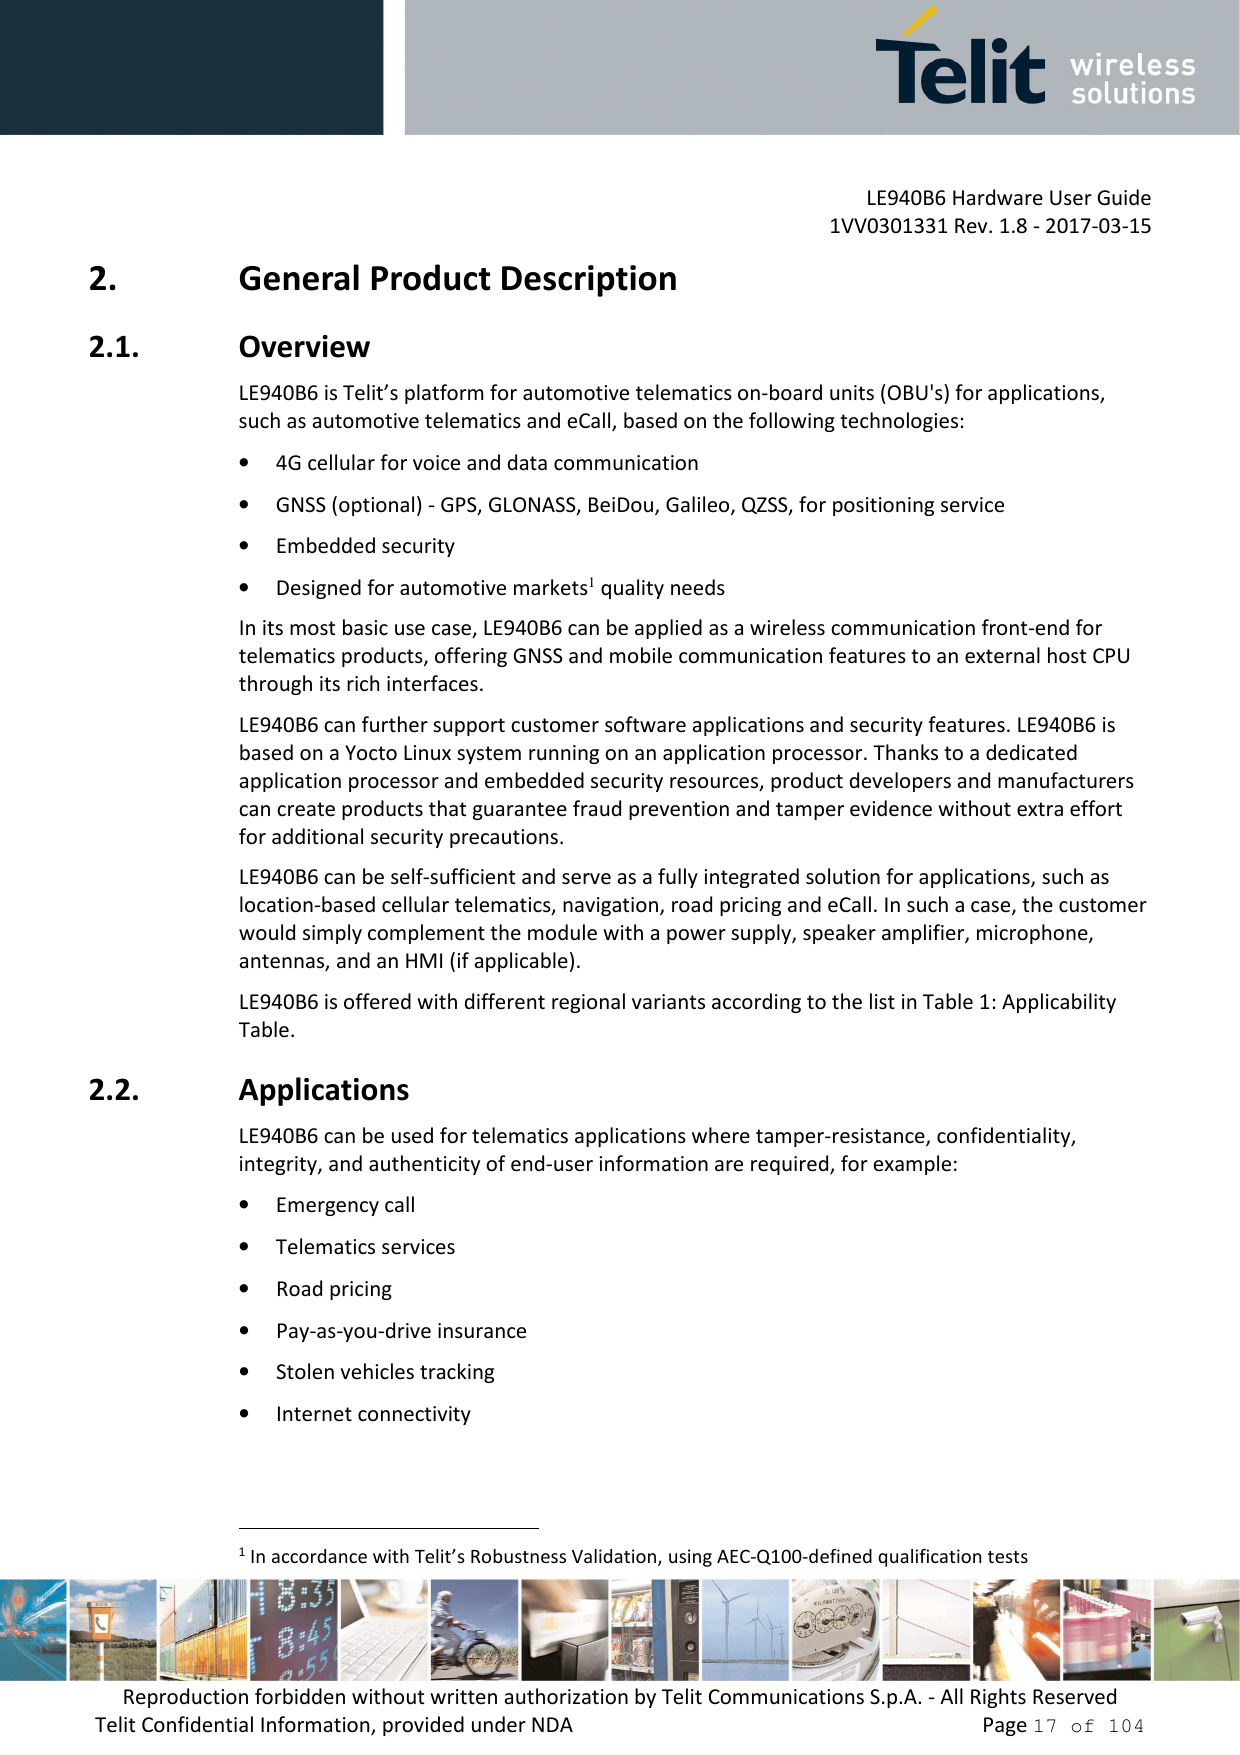 LE940B6 Hardware User Guide     1VV0301331 Rev. 1.8 - 2017-03-15 Reproduction forbidden without written authorization by Telit Communications S.p.A. - All Rights Reserved Telit Confidential Information, provided under NDA                 Page 17 of 104 2. General Product Description 2.1. Overview LE940B6 is Telit's platform for automotive telematics on-board units (OBU's) for applications, such as automotive telematics and eCall, based on the following technologies: • 4G cellular for voice and data communication • GNSS (optional) - GPS, GLONASS, BeiDou, Galileo, QZSS, for positioning service • Embedded security  • Designed for automotive markets1 quality needs In its most basic use case, LE940B6 can be applied as a wireless communication front-end for telematics products, offering GNSS and mobile communication features to an external host CPU through its rich interfaces. LE940B6 can further support customer software applications and security features. LE940B6 is based on a Yocto Linux system running on an application processor. Thanks to a dedicated application processor and embedded security resources, product developers and manufacturers can create products that guarantee fraud prevention and tamper evidence without extra effort for additional security precautions.   LE940B6 can be self-sufficient and serve as a fully integrated solution for applications, such as location-based cellular telematics, navigation, road pricing and eCall. In such a case, the customer would simply complement the module with a power supply, speaker amplifier, microphone, antennas, and an HMI (if applicable).   LE940B6 is offered with different regional variants according to the list in Table 1: Applicability Table.  2.2. Applications LE940B6 can be used for telematics applications where tamper-resistance, confidentiality, integrity, and authenticity of end-user information are required, for example: • Emergency call • Telematics services • Road pricing • Pay-as-you-drive insurance • Stol